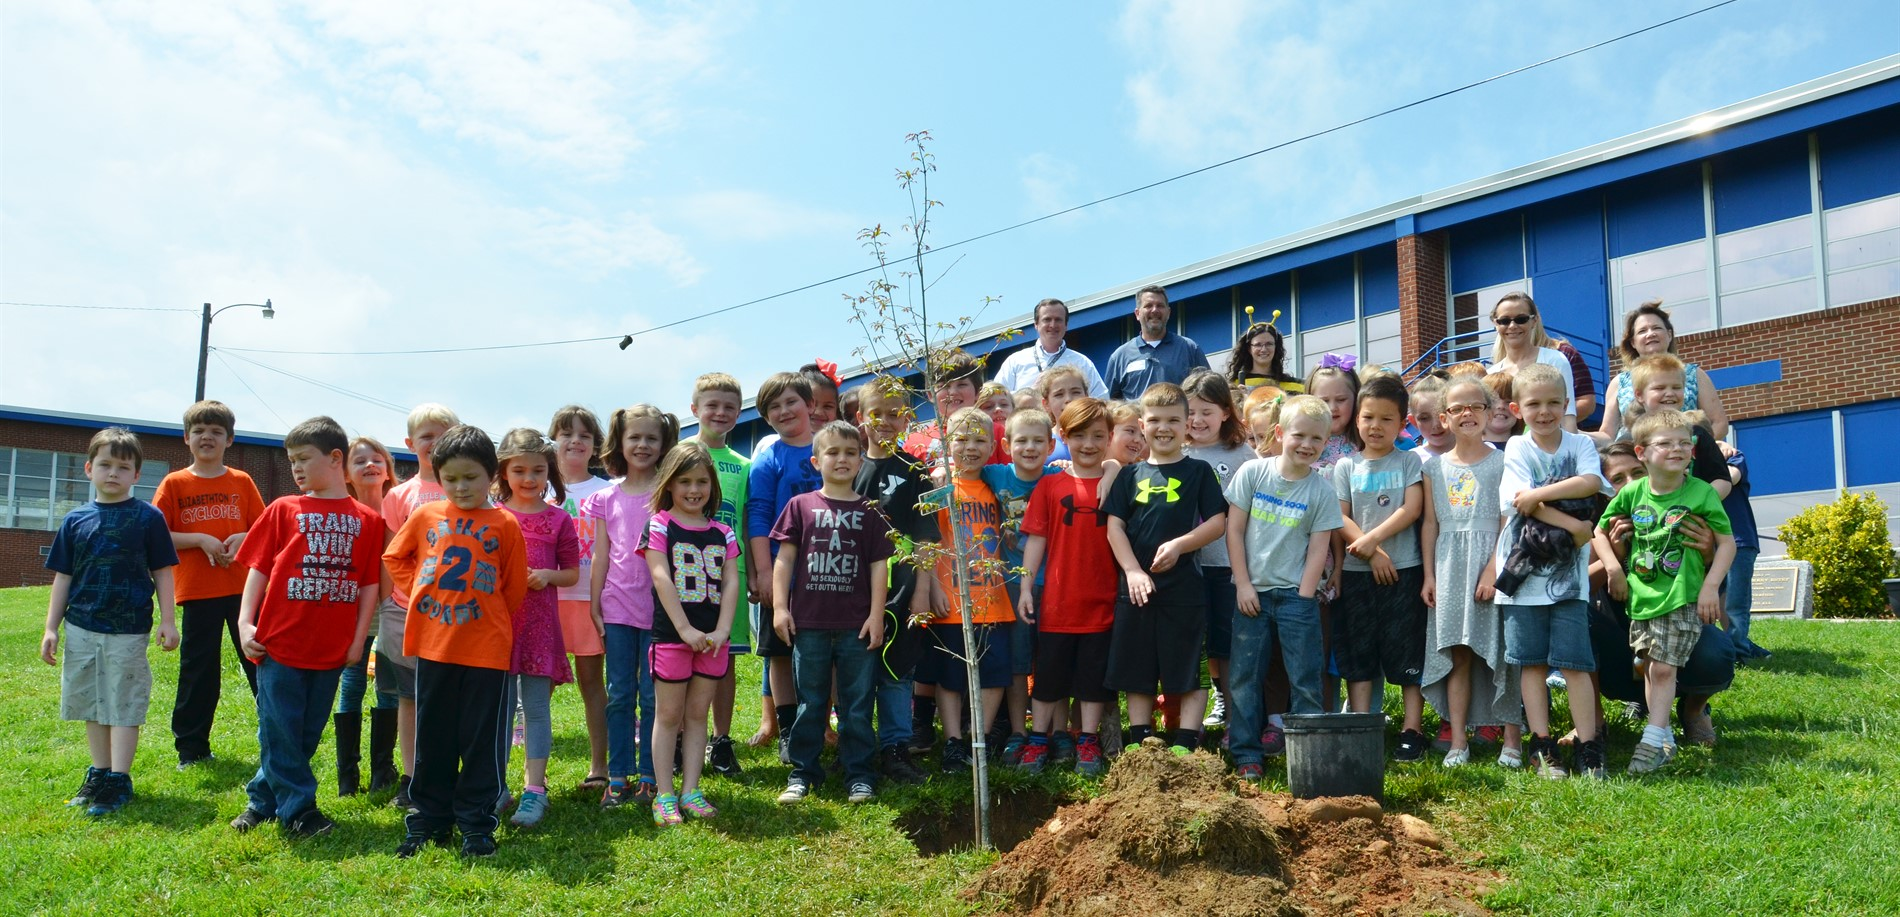 Planting a tree on Earth Day